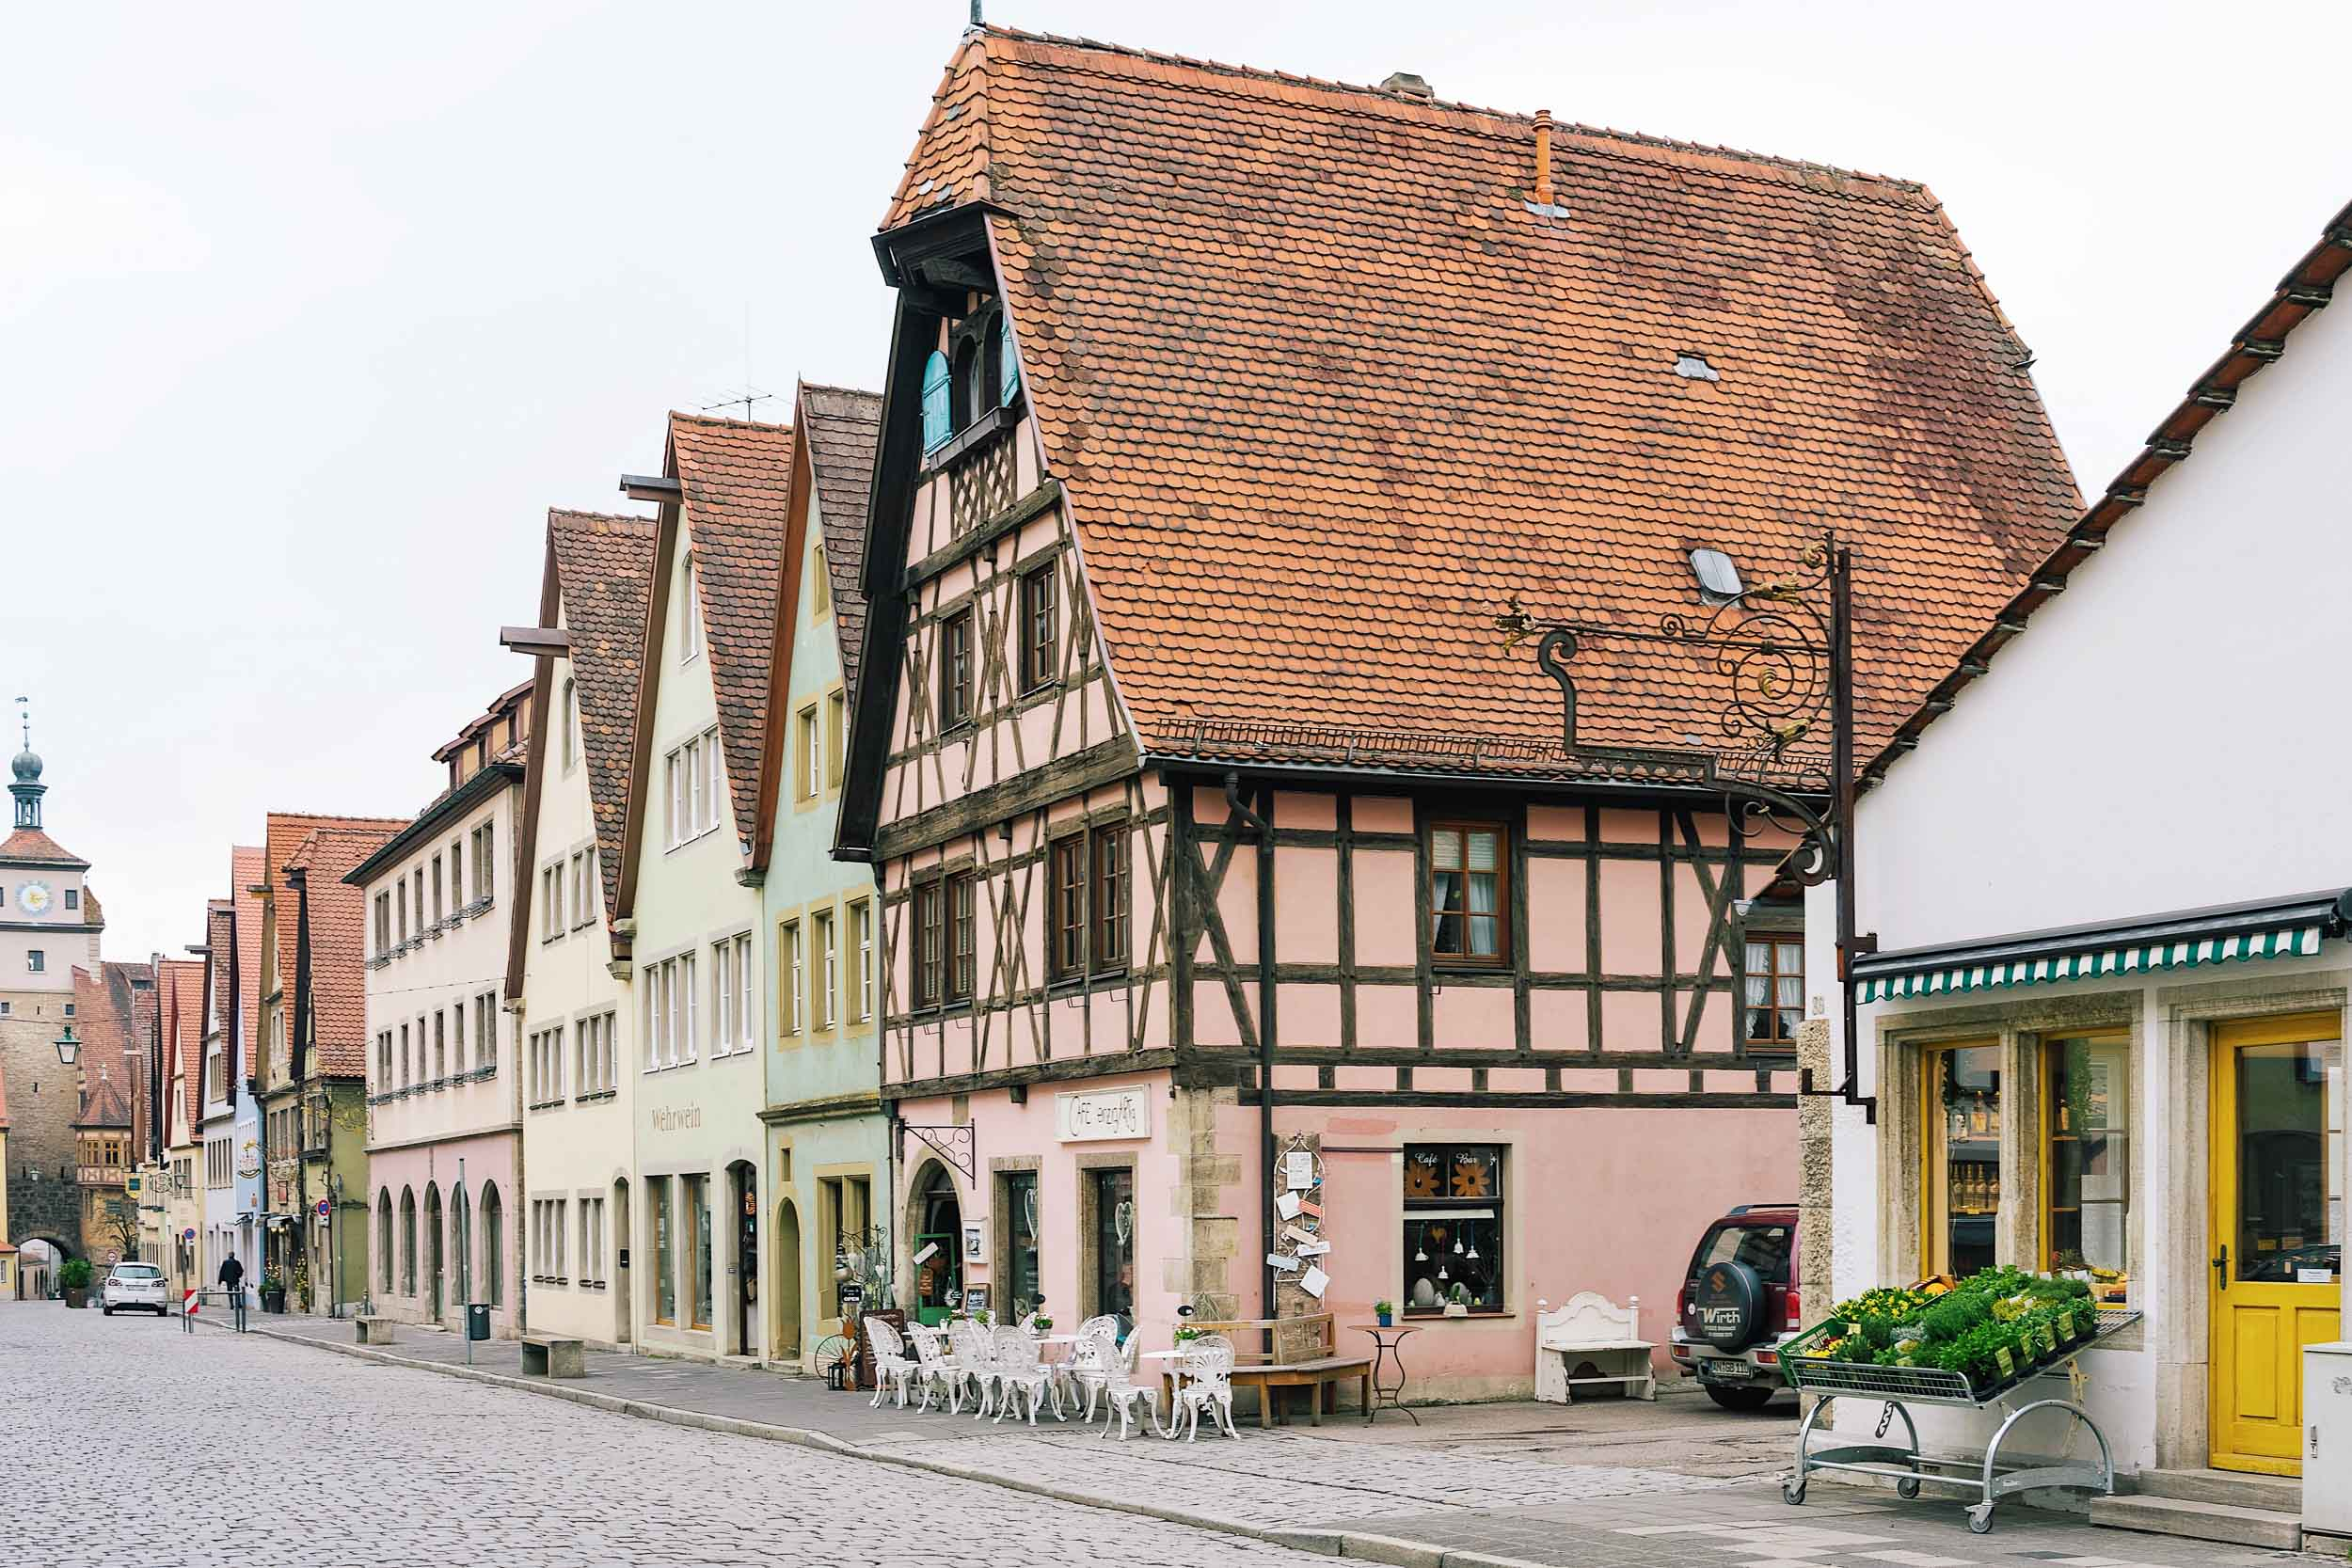 The perfect day trip from Frankfurt: the medieval fairytale town of Rothenburg